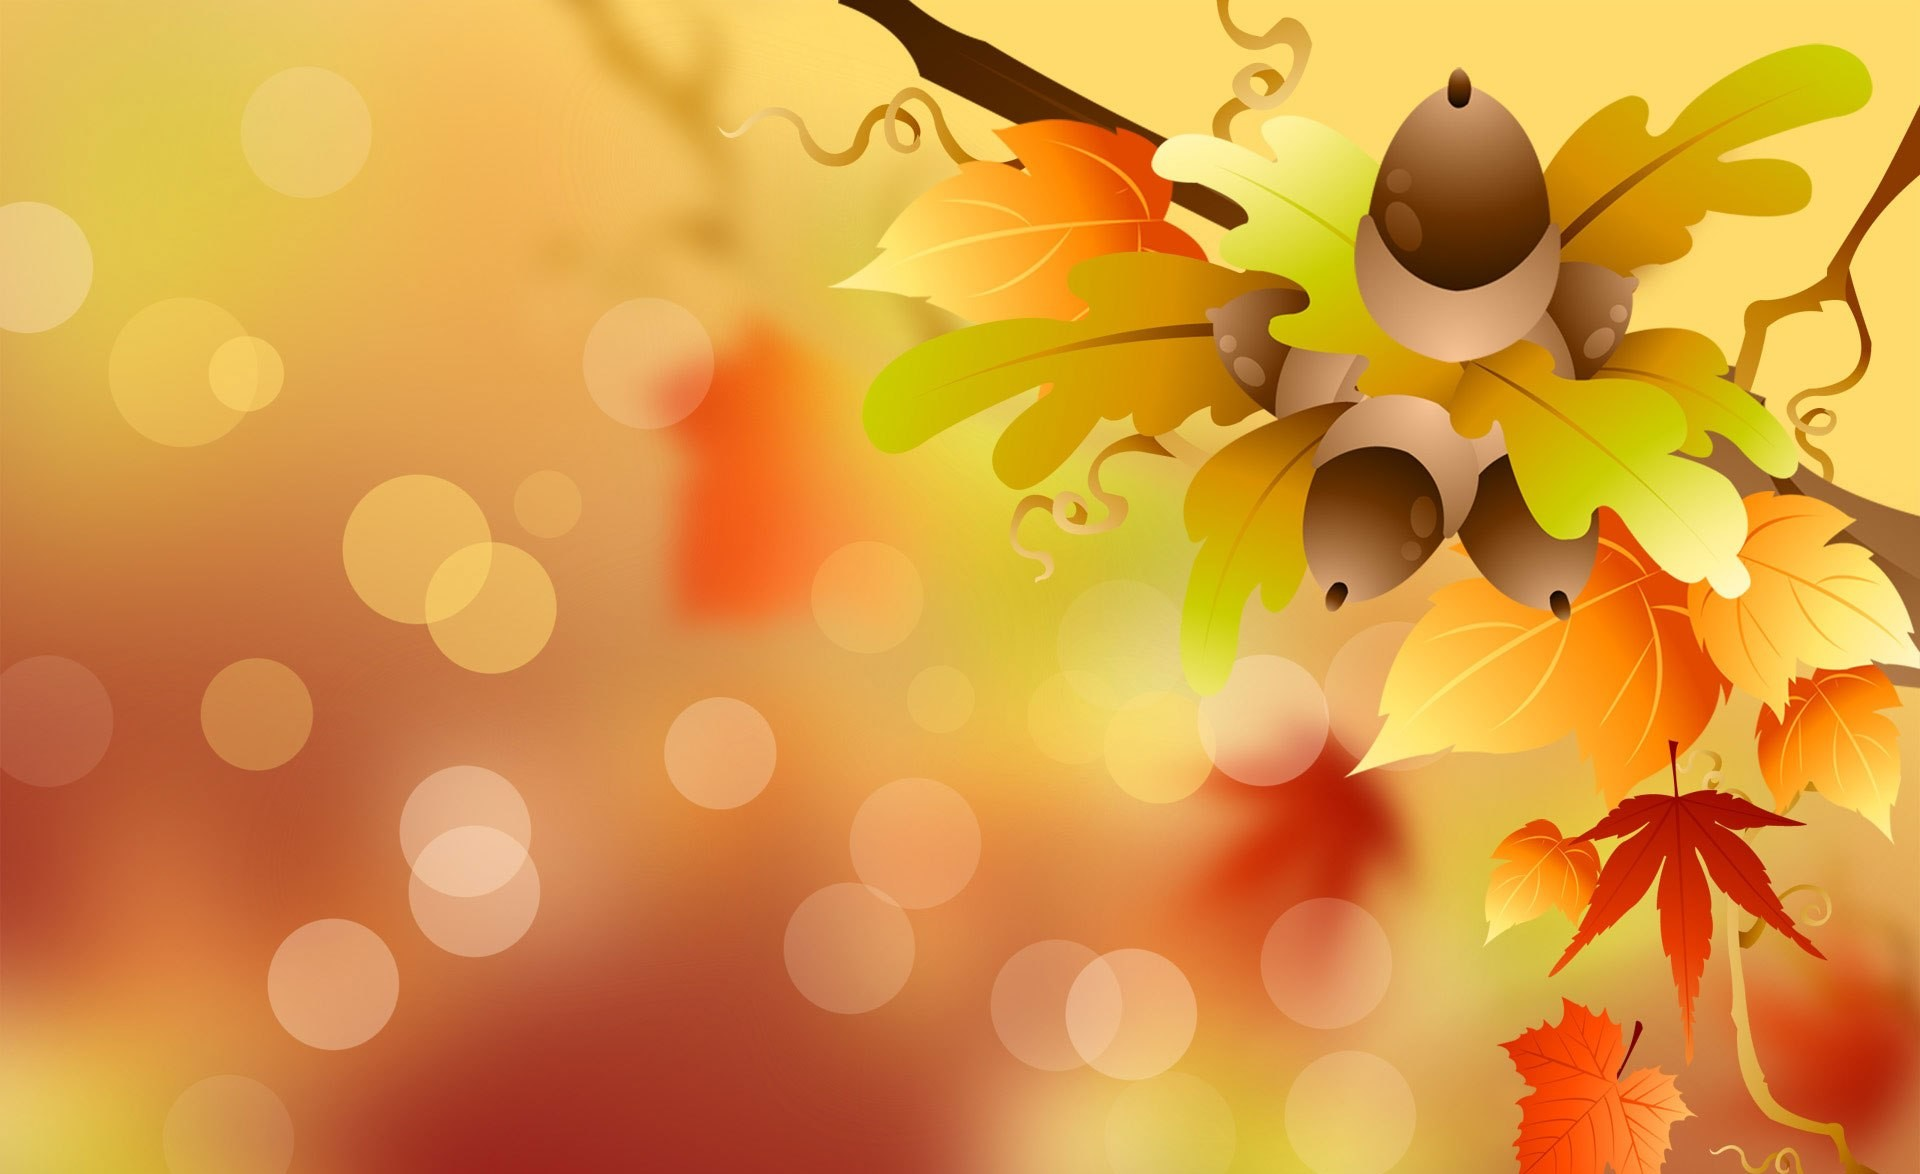 Autumn Nature Wallpapers HD Pictures One HD Wallpaper Pictures 1000×690 Autumn  Images Backgrounds (